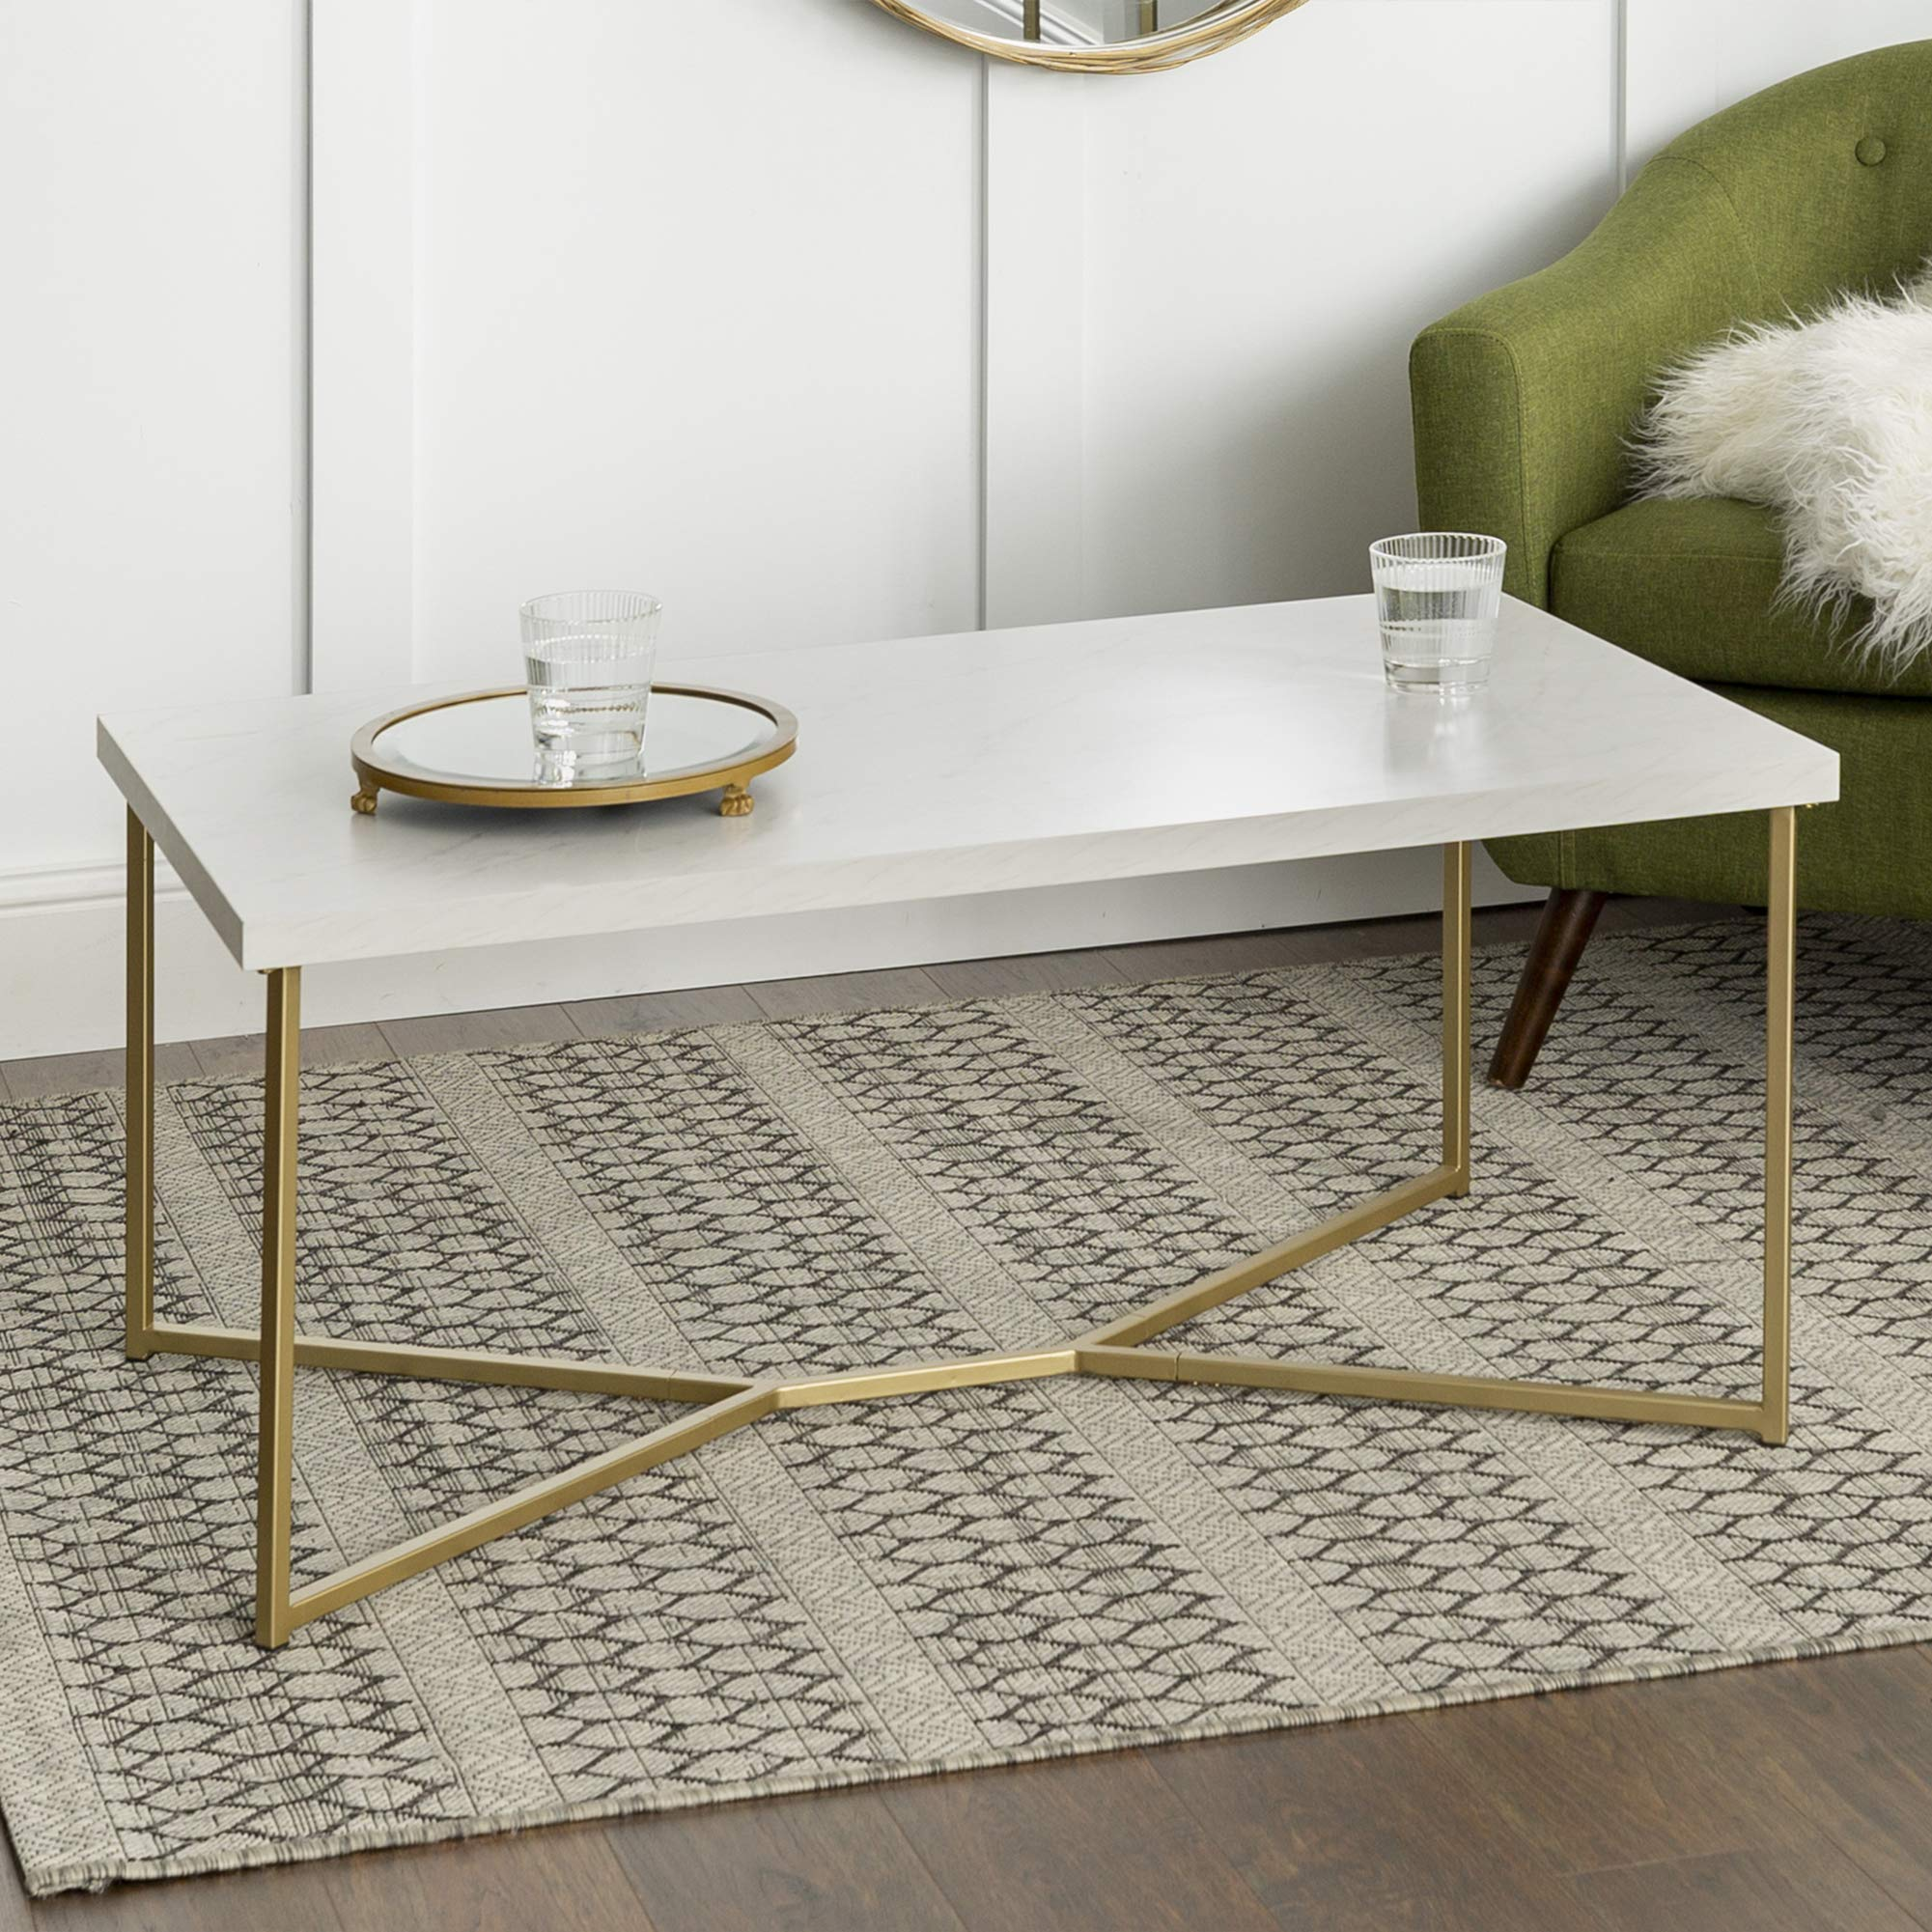 WE Furniture AZF42LUXWMG Mid Century Modern Rectangle Coffee Table, 42 Inch, White Marble, Gold by WE Furniture